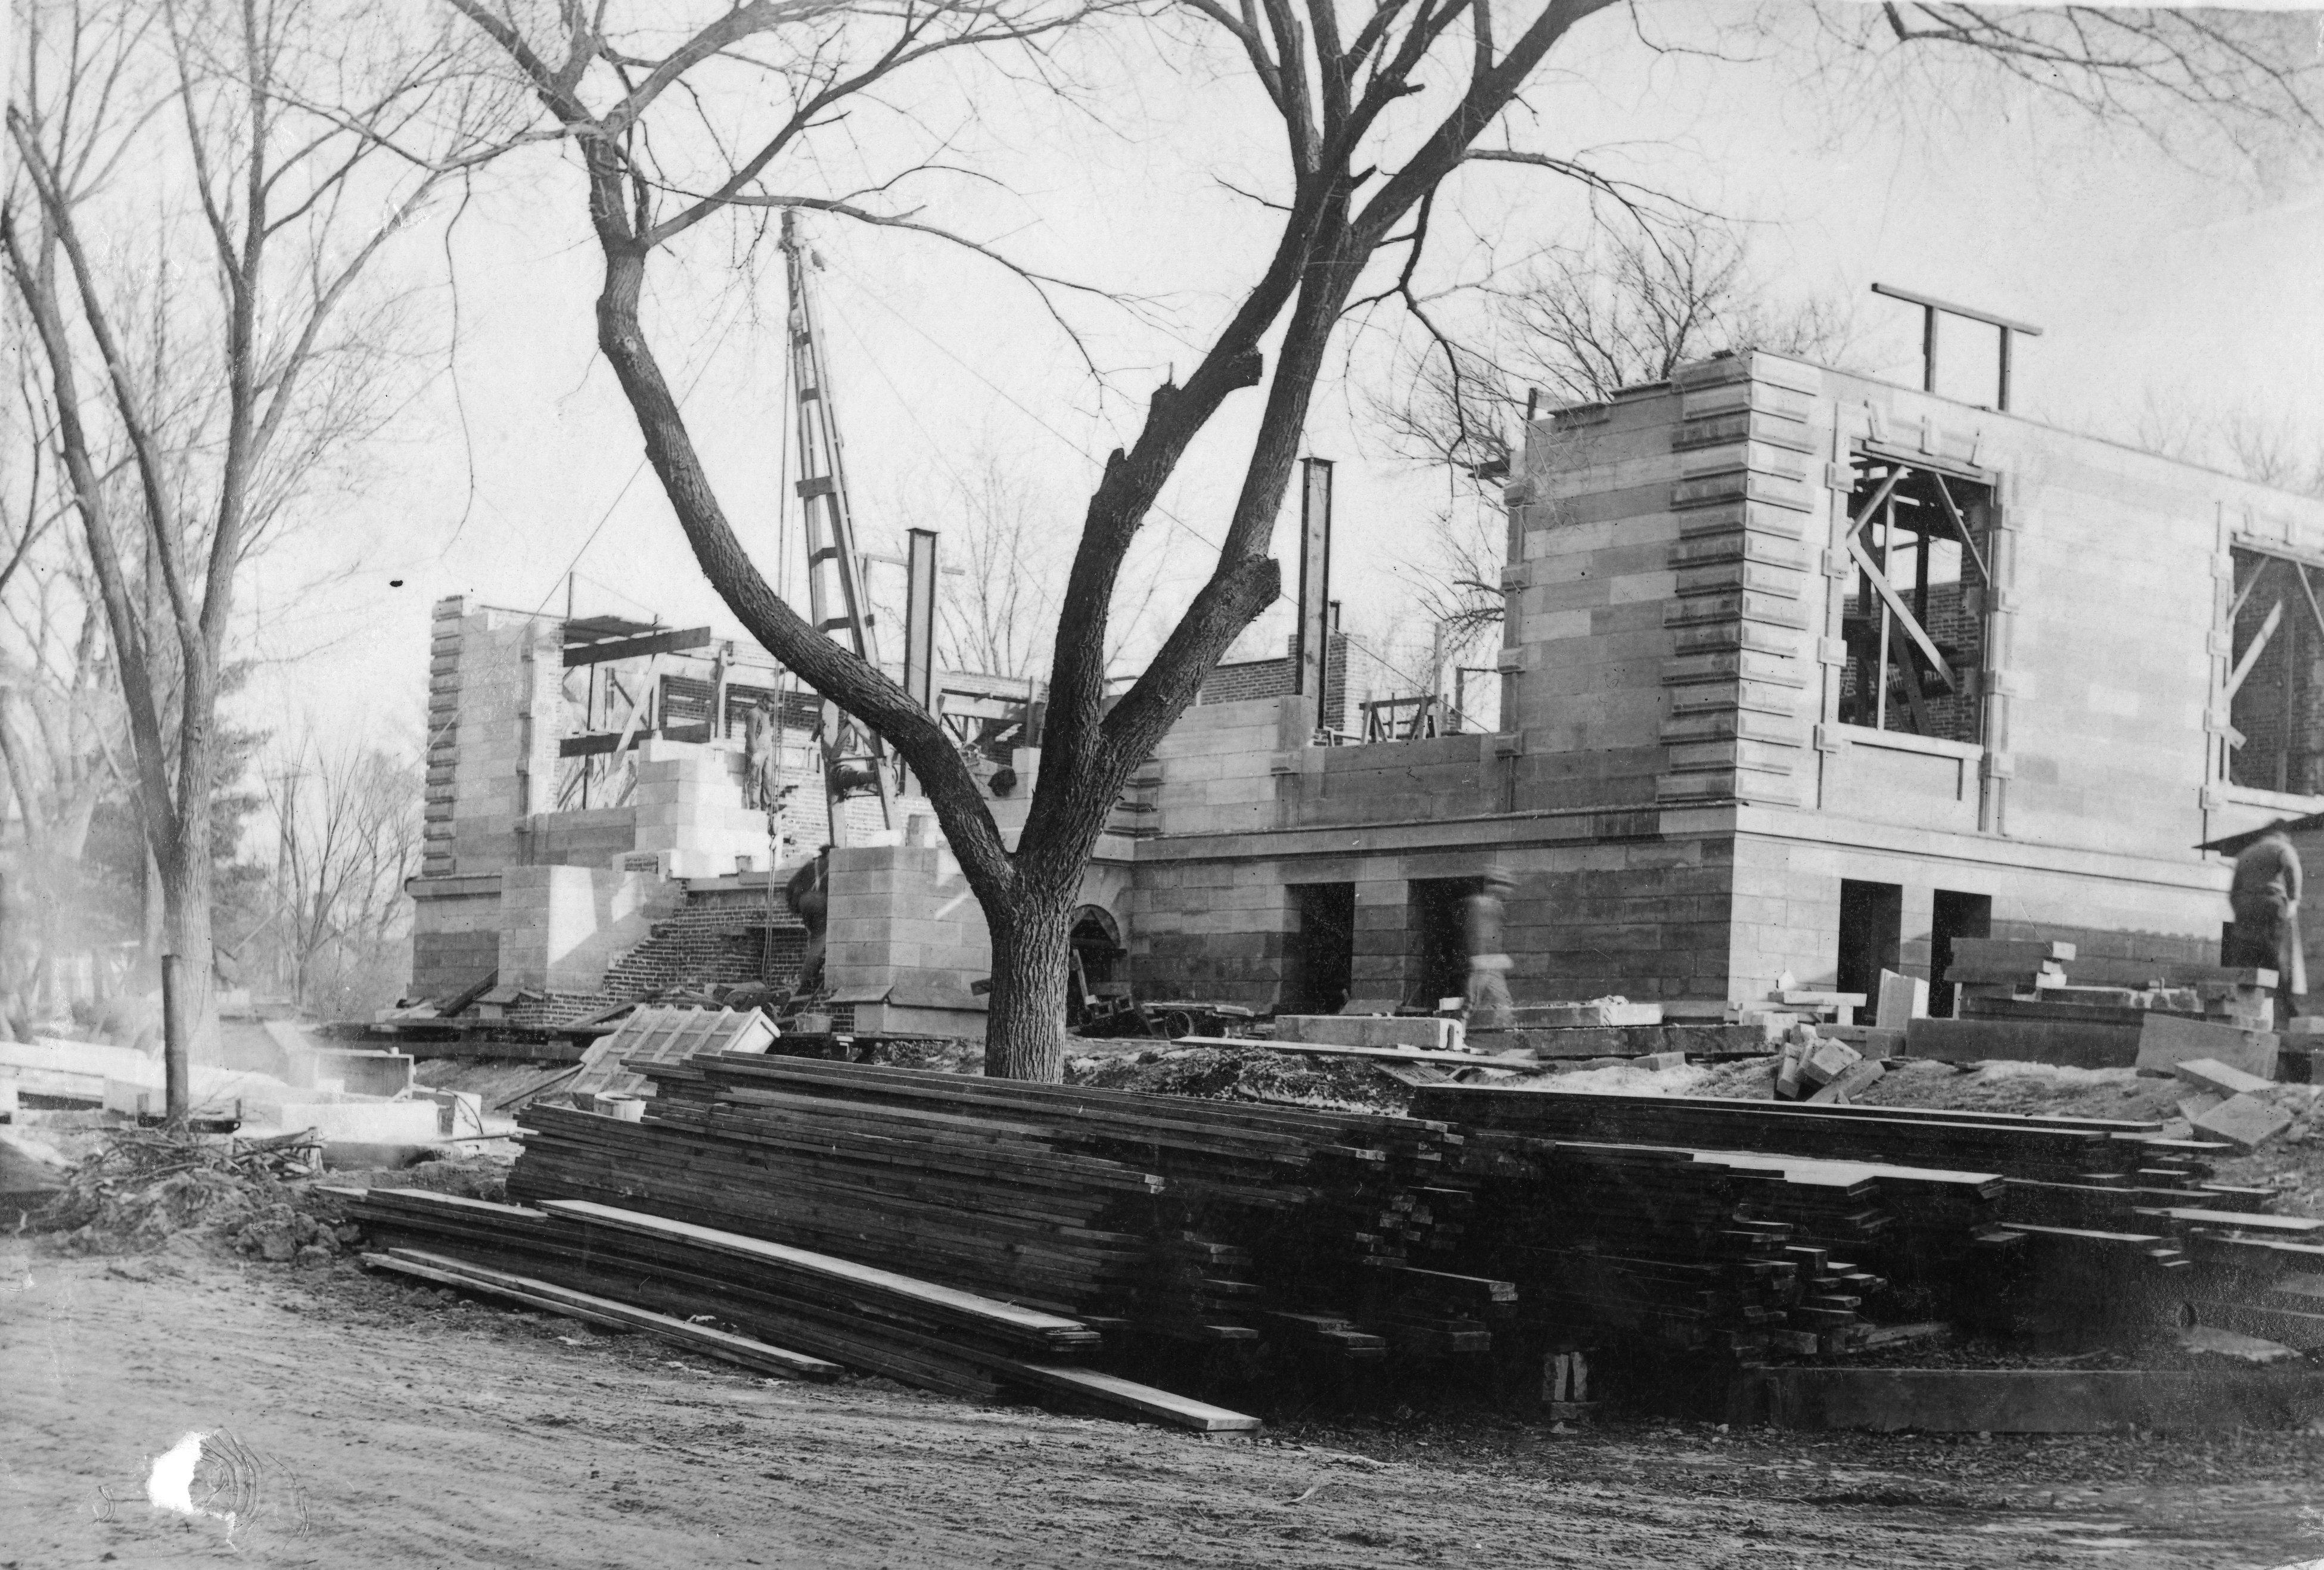 Workers building up the walls, stairs, and windows of the Carnegie building